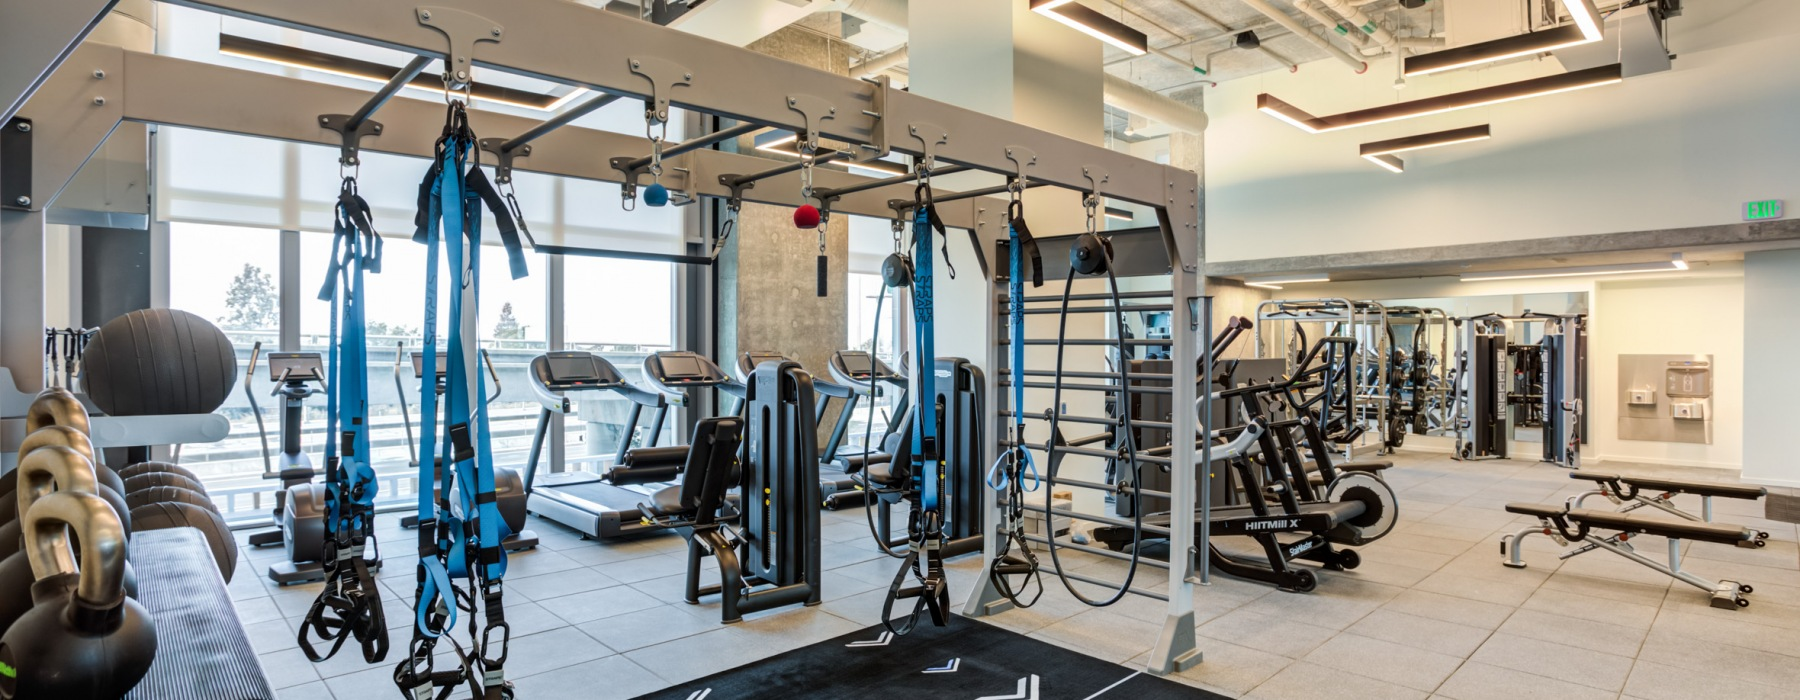 Gym Full of cardio equipment, jungle gym exercise station and free weights